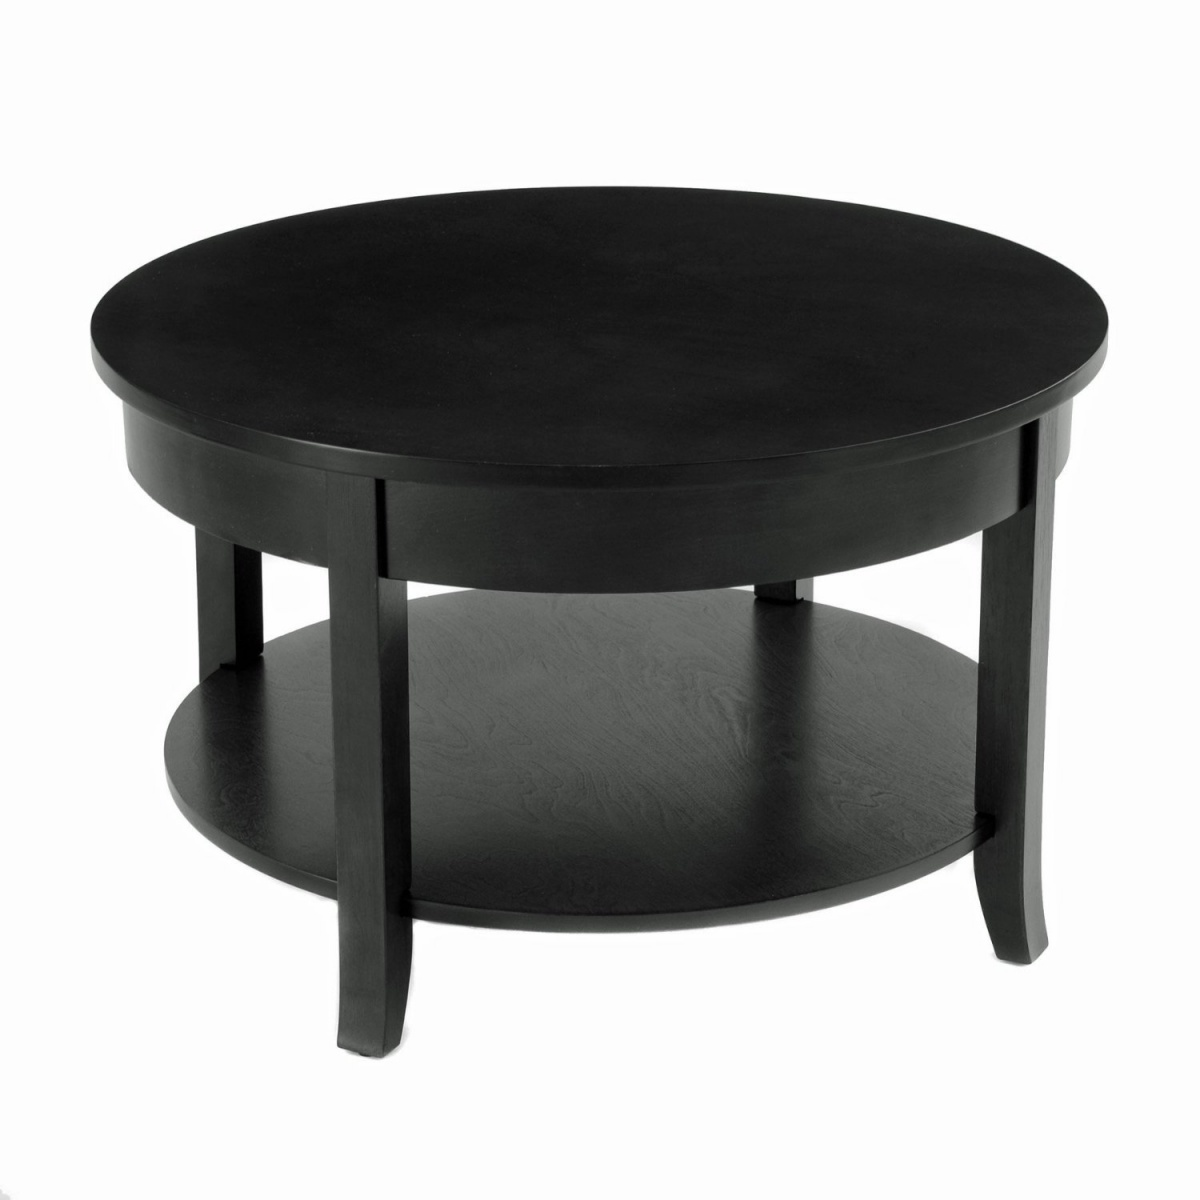 small round coffee table with storage furniture kind based black number decoration needed family interior backyards unique grilled range tone brings outdoor high accent power